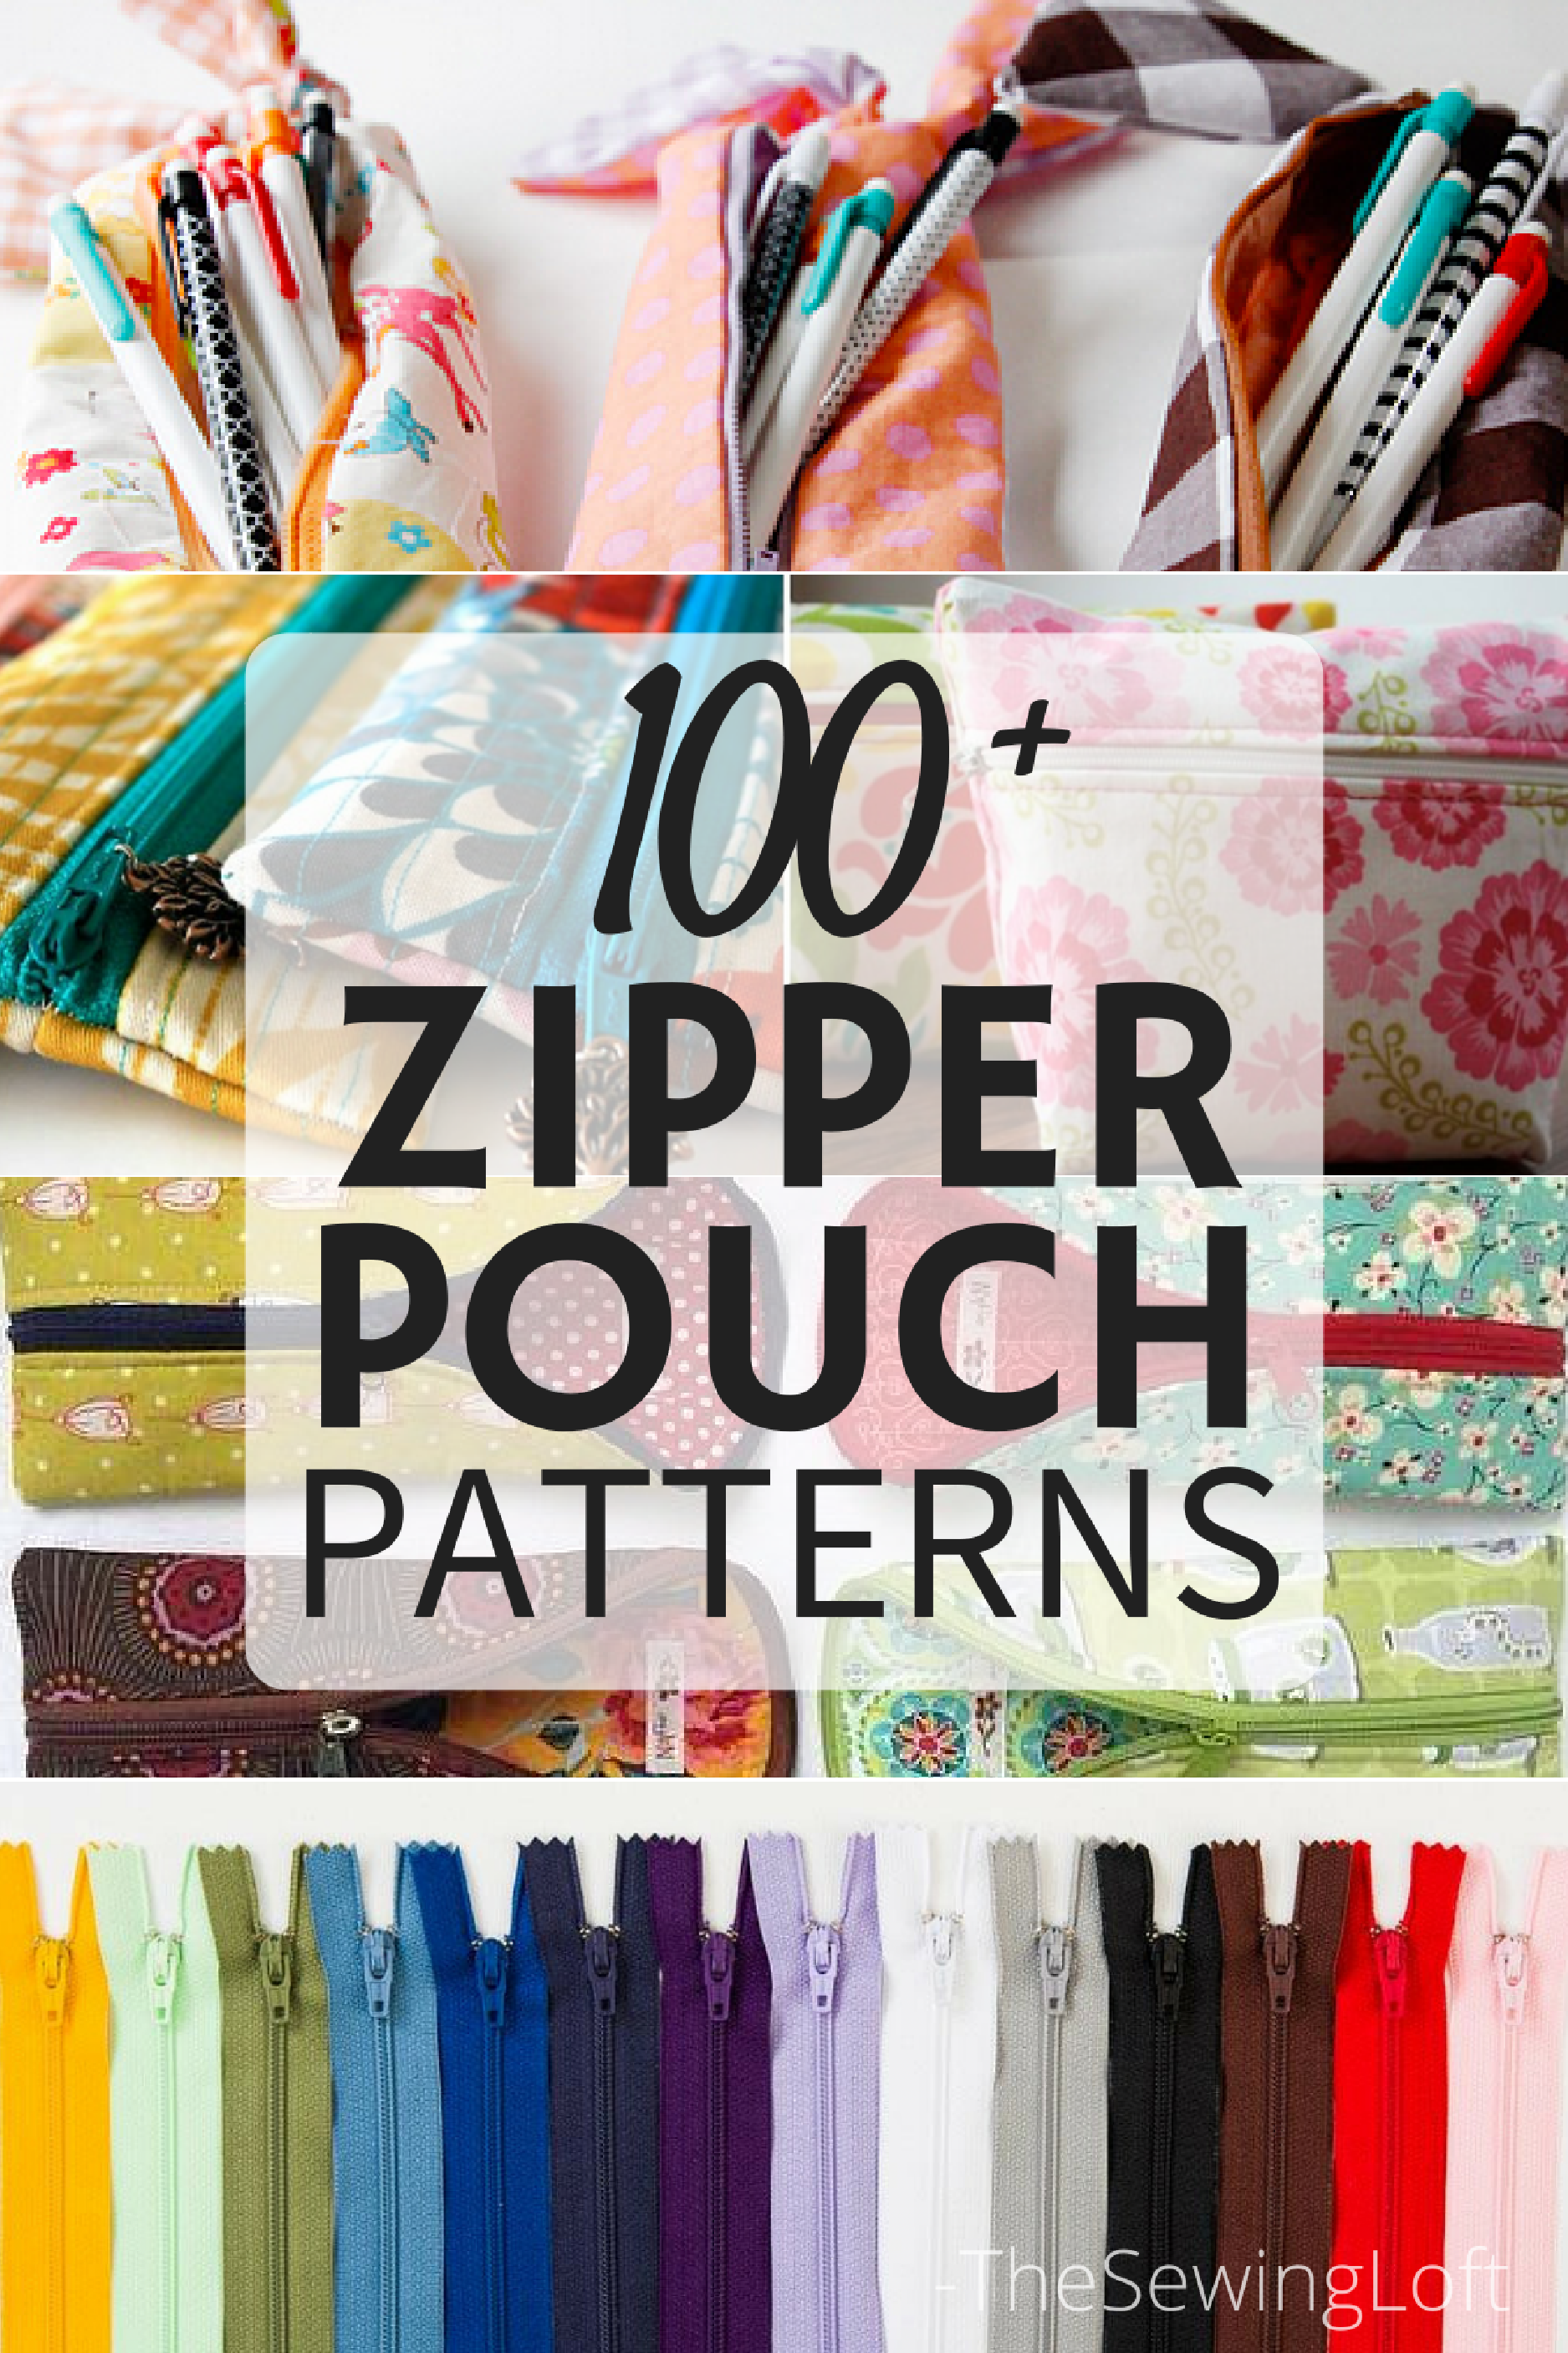 Here Is A List Of Over 100 Free Zipper Bag Patterns Rounded Up In One Place To Get You Started